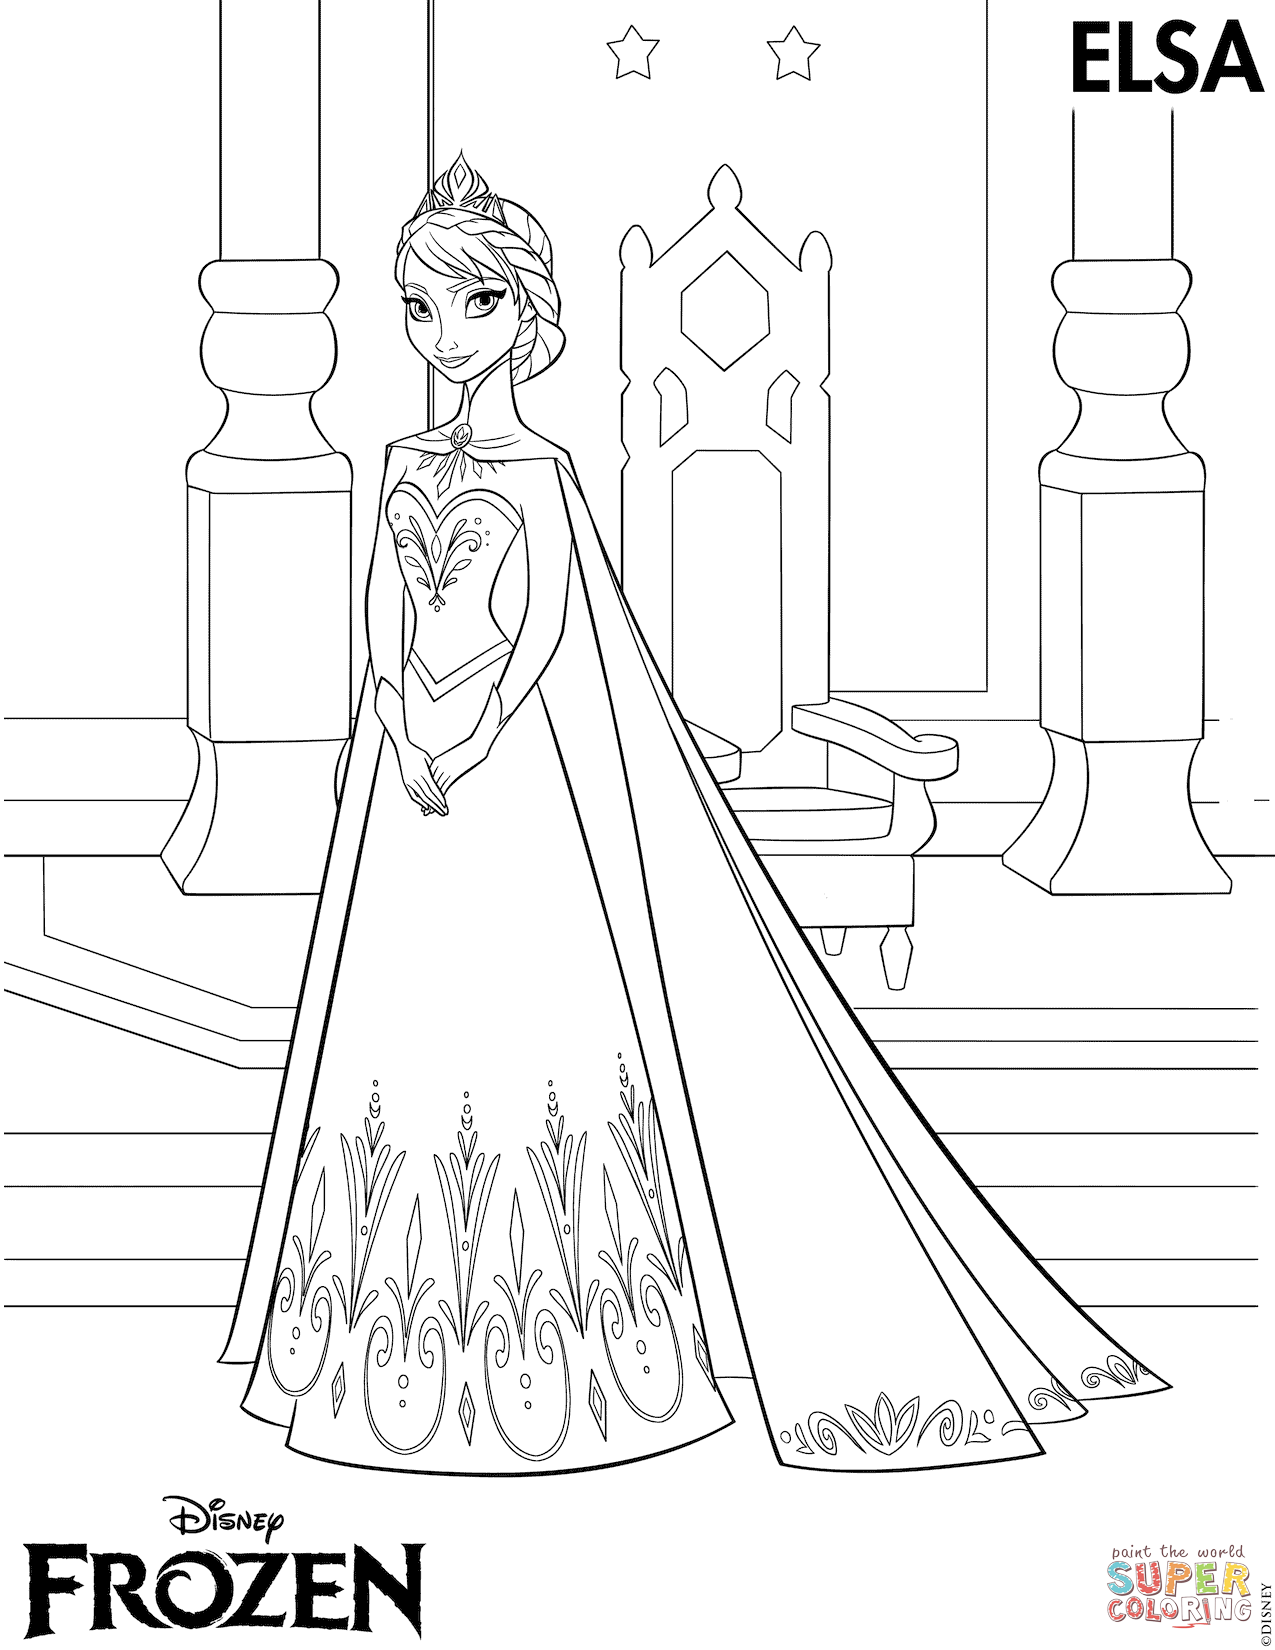 Elsa Coronation Coloring Page Free Printable Coloring Pages